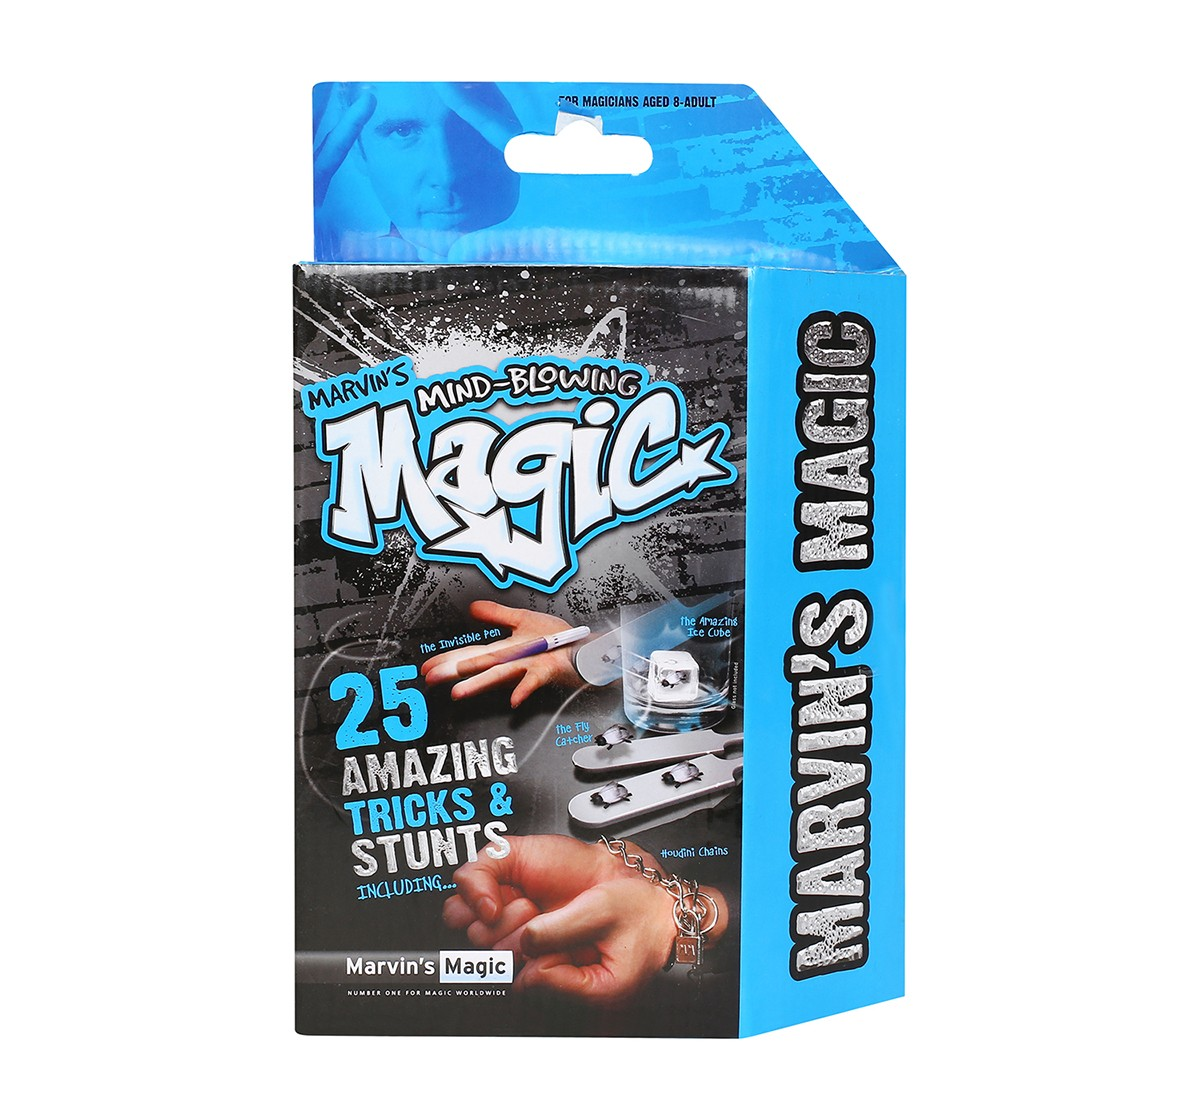 Marvin'S Magic 25 Amazing Tricks And Stunts Impulse Toys for Kids age 8Y+